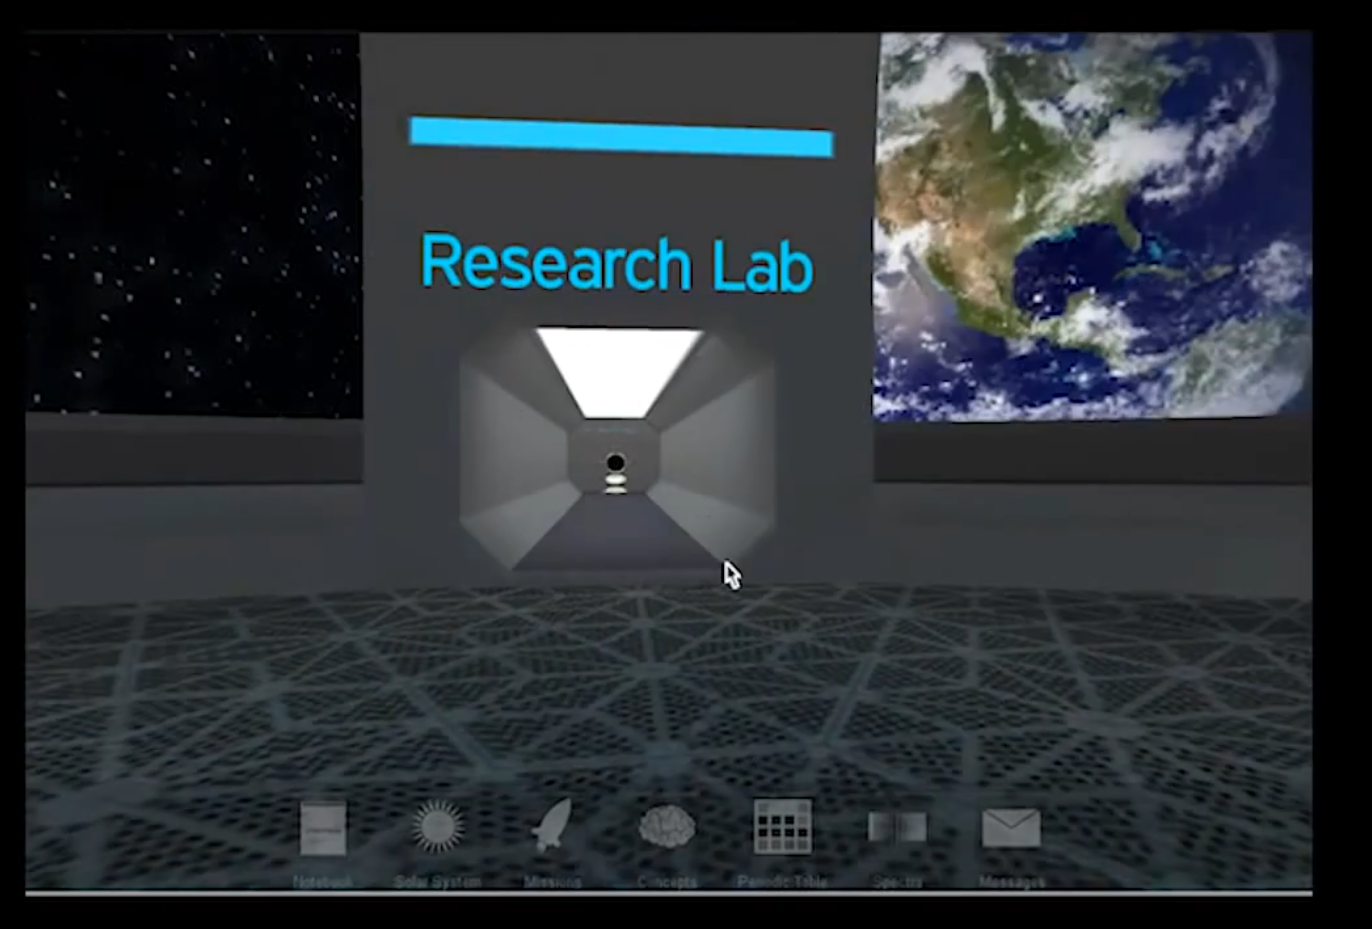 This+is+the+entrance+to+the+research+lab.+Here+you+can+research+the+aliens%2C+and+%28hopefully%29+find+them+a+good+home.